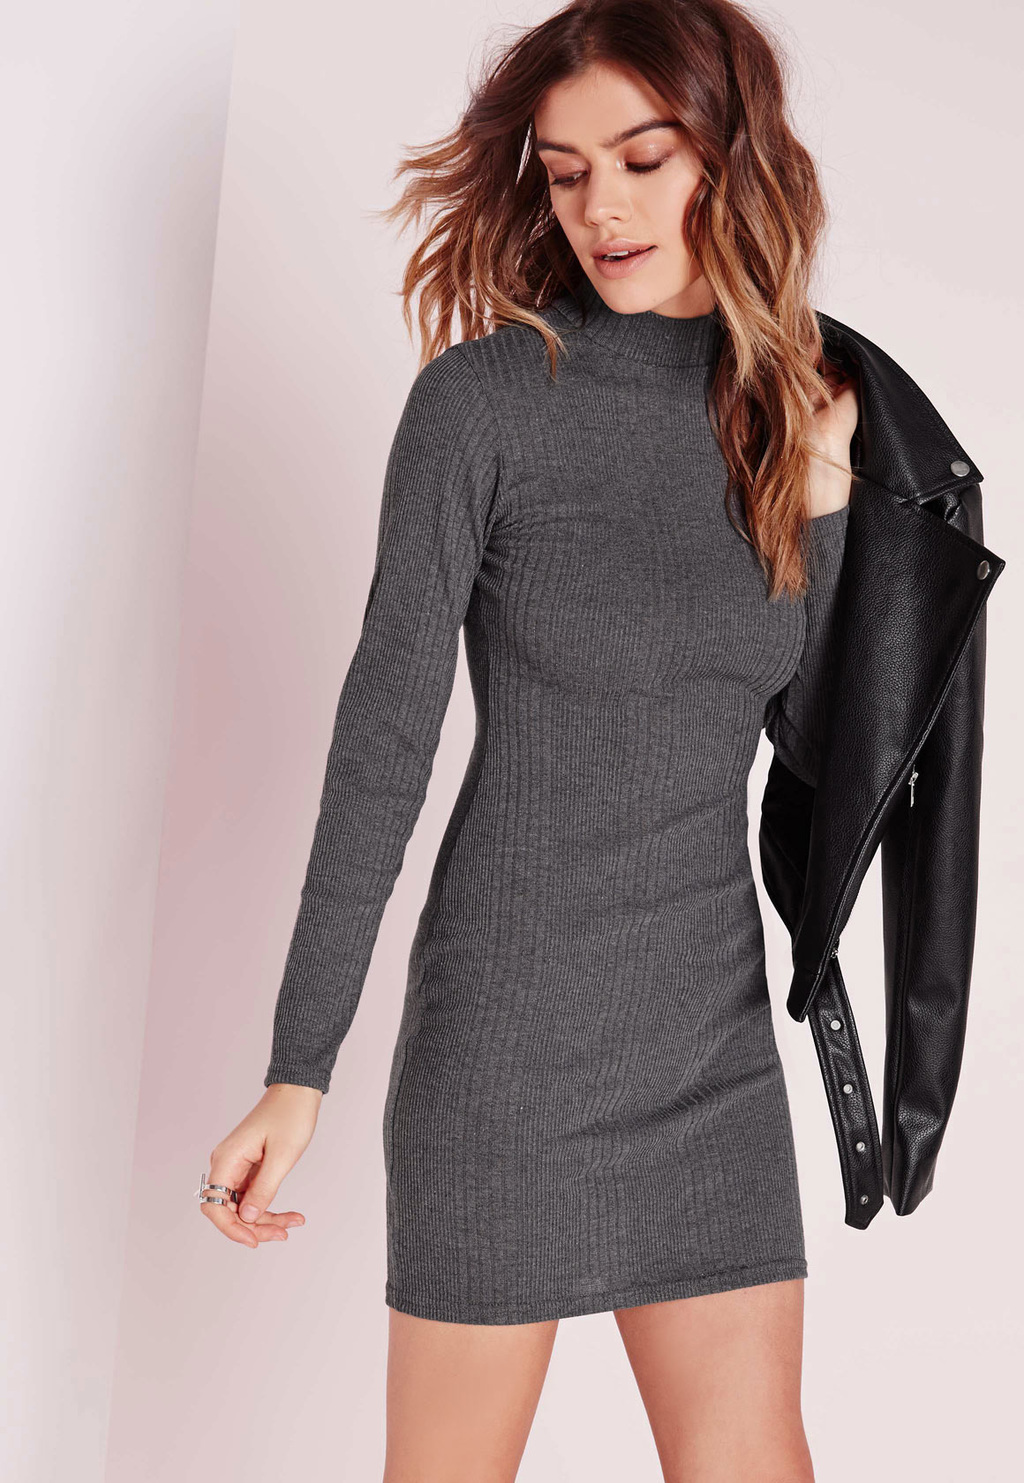 High Neck Long Sleeve Rib Bodycon Dress Grey Marl, Grey - length: mini; fit: tight; neckline: high neck; style: bodycon; hip detail: draws attention to hips; predominant colour: charcoal; occasions: casual, creative work; fibres: polyester/polyamide - stretch; sleeve length: long sleeve; sleeve style: standard; pattern type: fabric; texture group: jersey - stretchy/drapey; pattern: marl; season: s/s 2016; wardrobe: basic